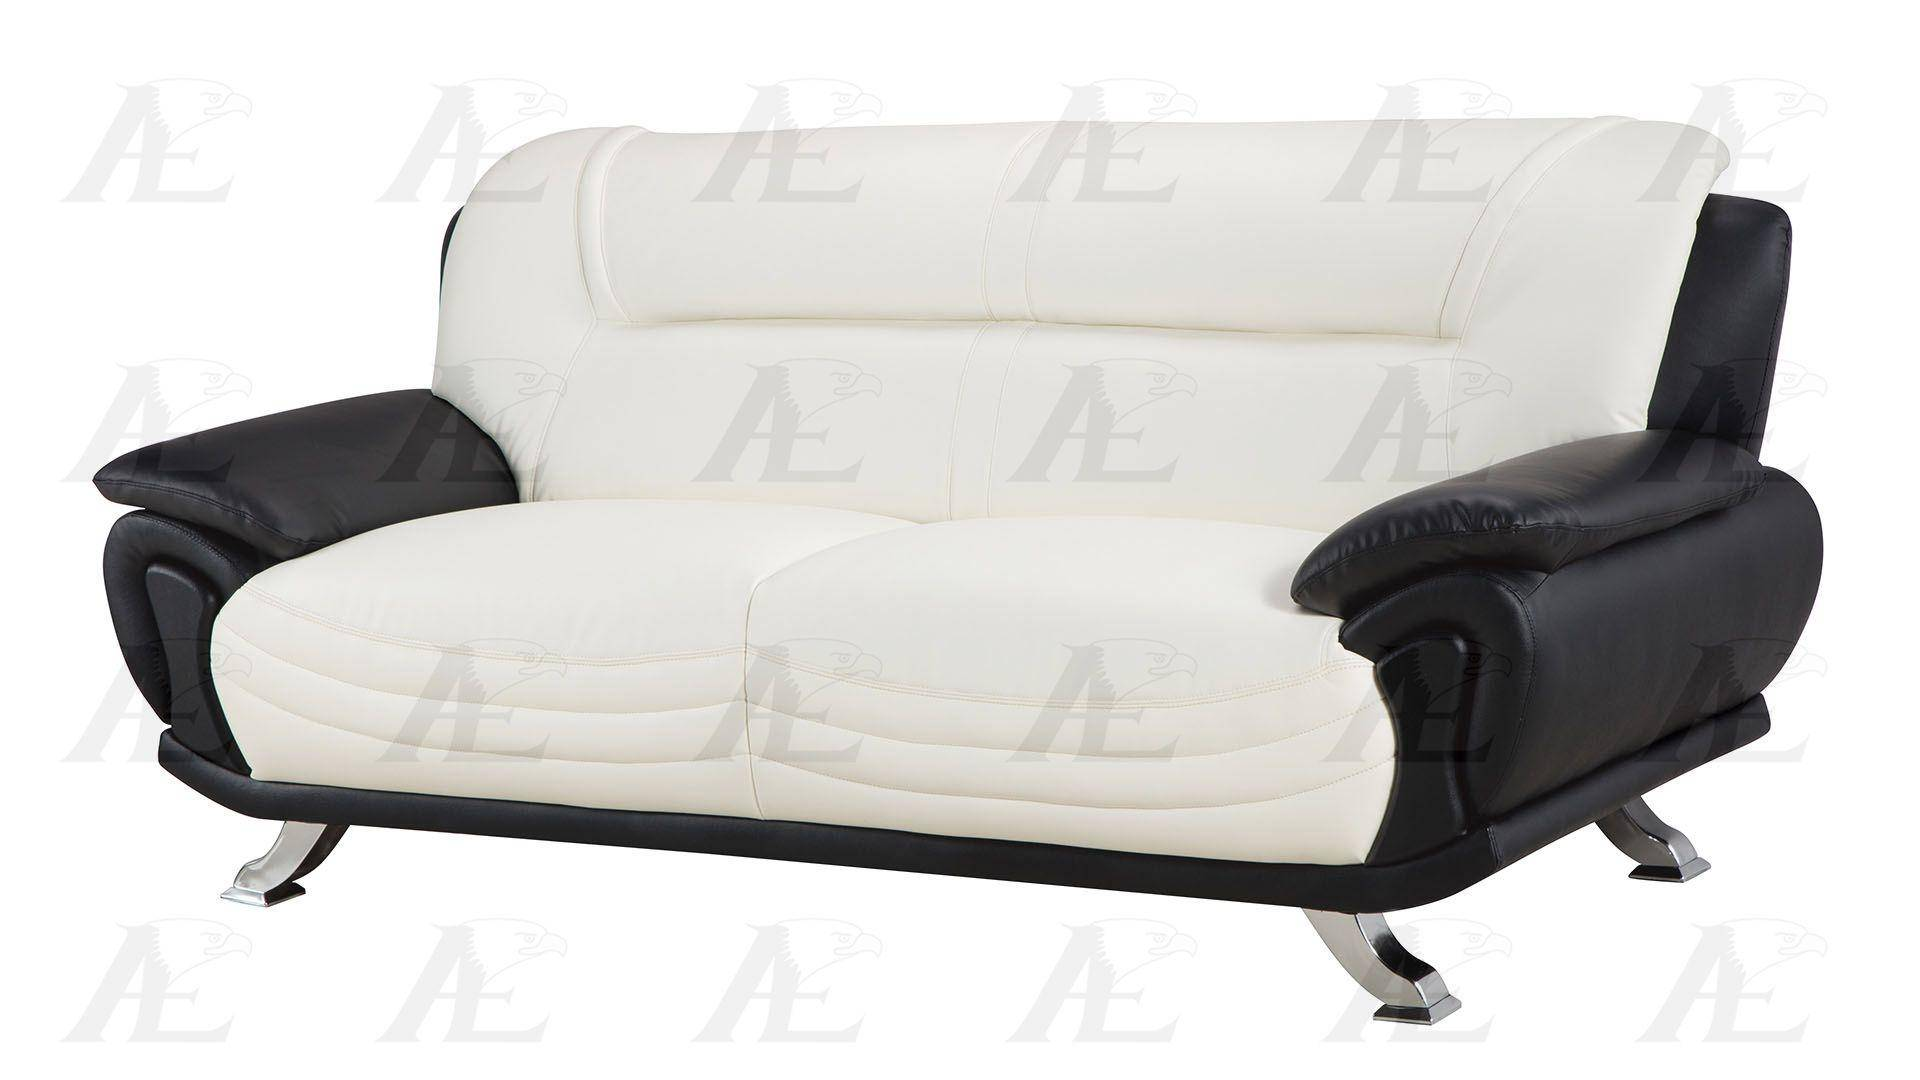 Ivory And Black Faux Leather Sofa American Eagle Ae388 Iv Bk